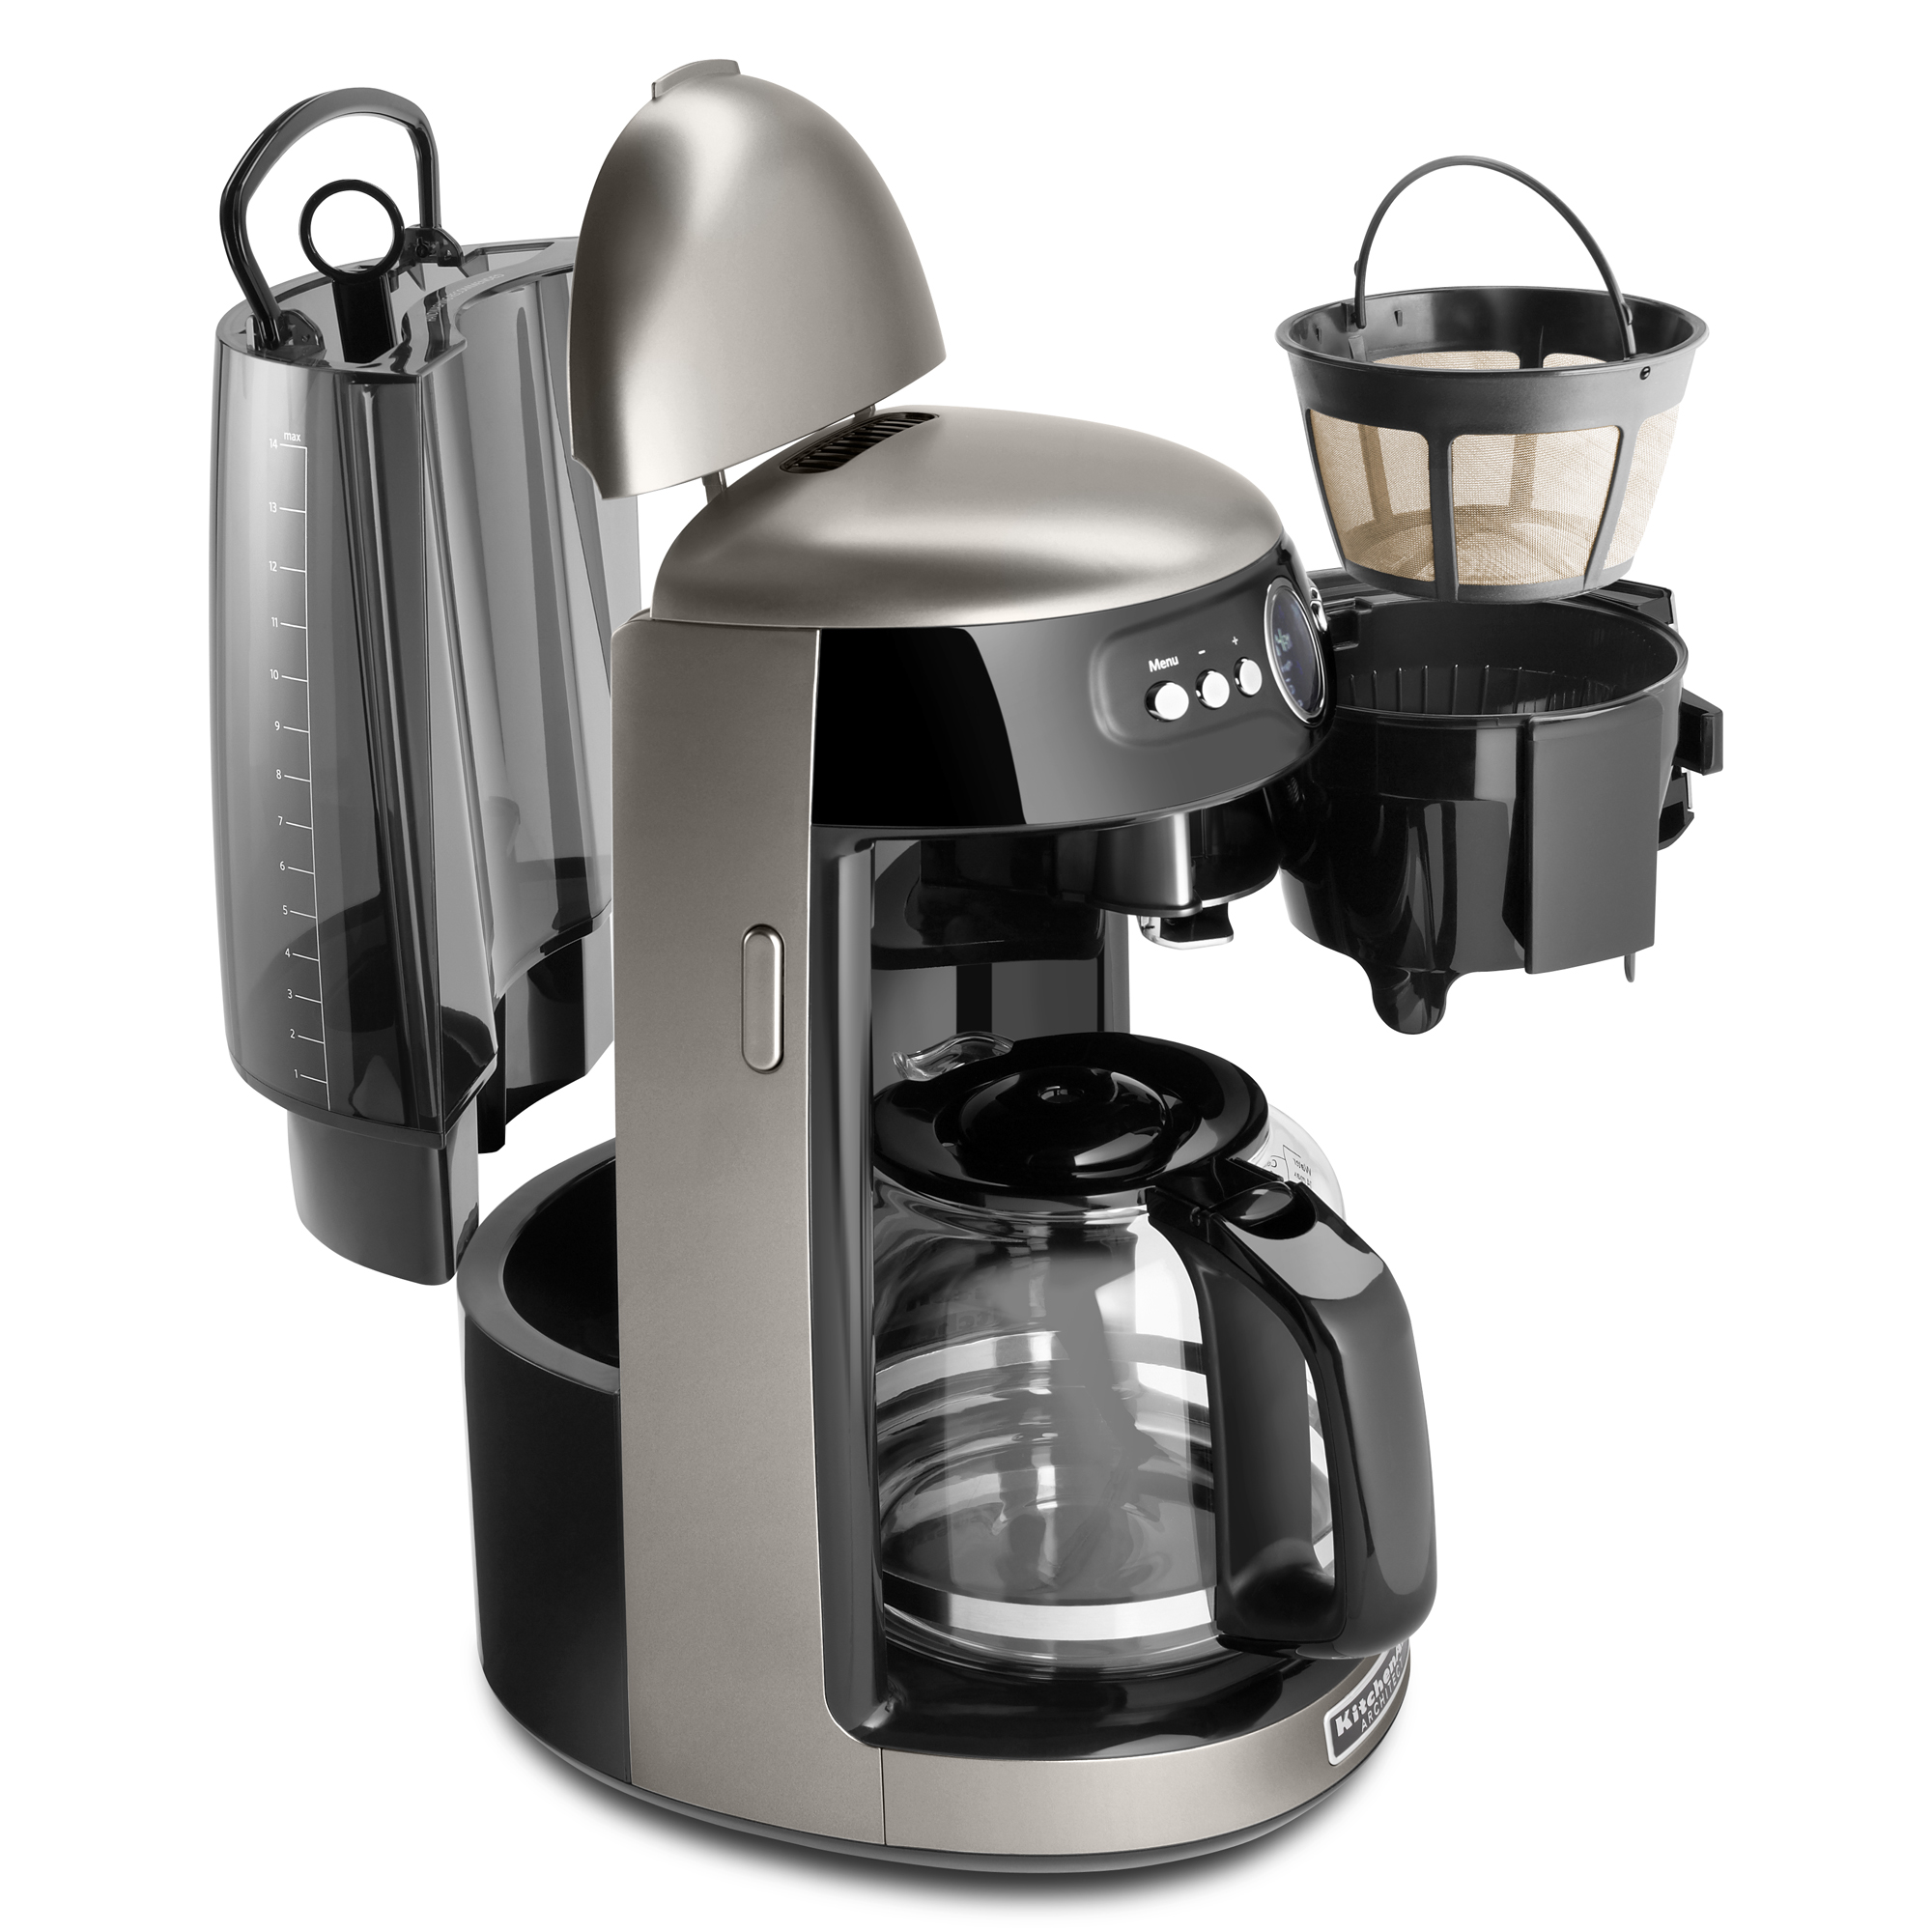 Kitchen Aid Coffee Maker | Details About Kitchenaid Refurbished 14 Cup Coffee Maker Rkcm1402